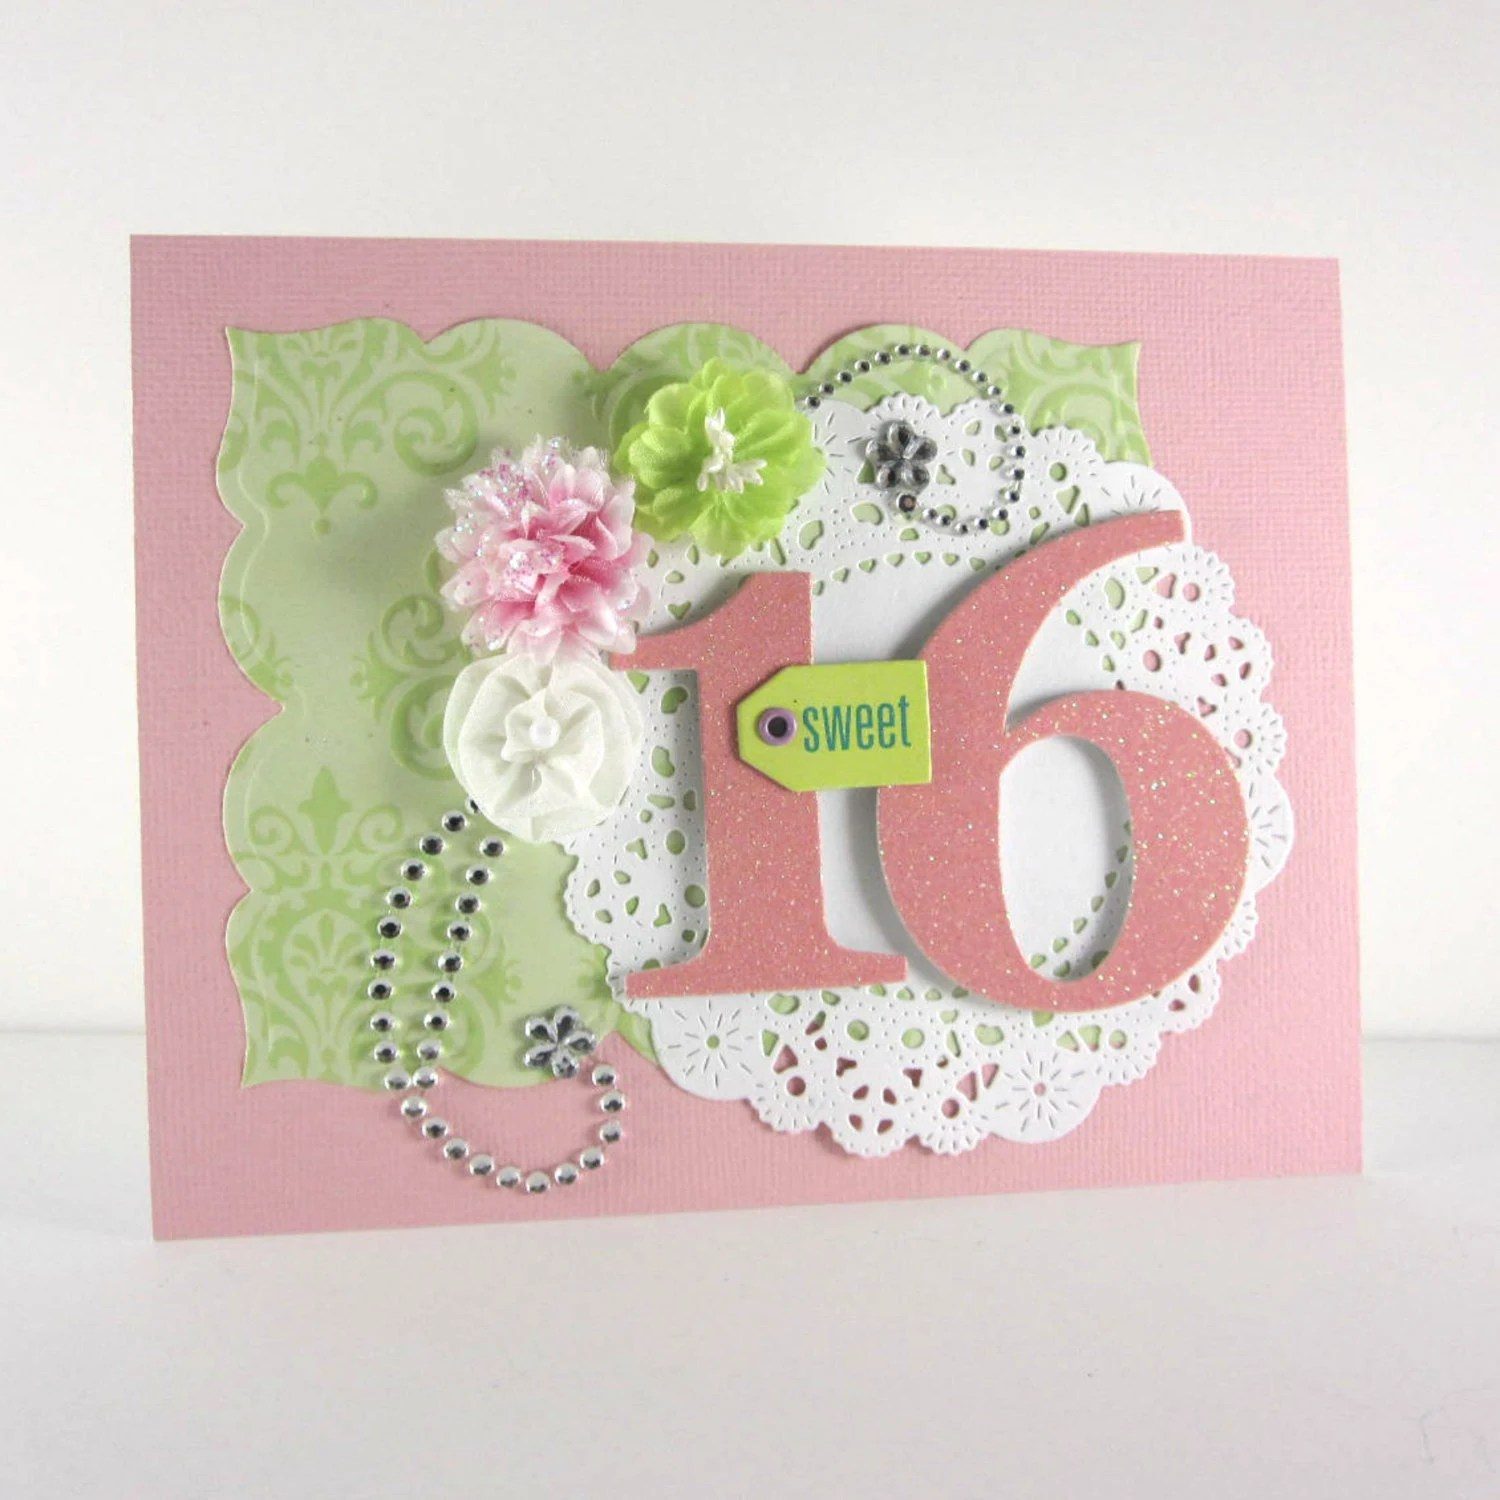 Sweet 16th Birthday Card Sweet 16 Handmade Embossed Card